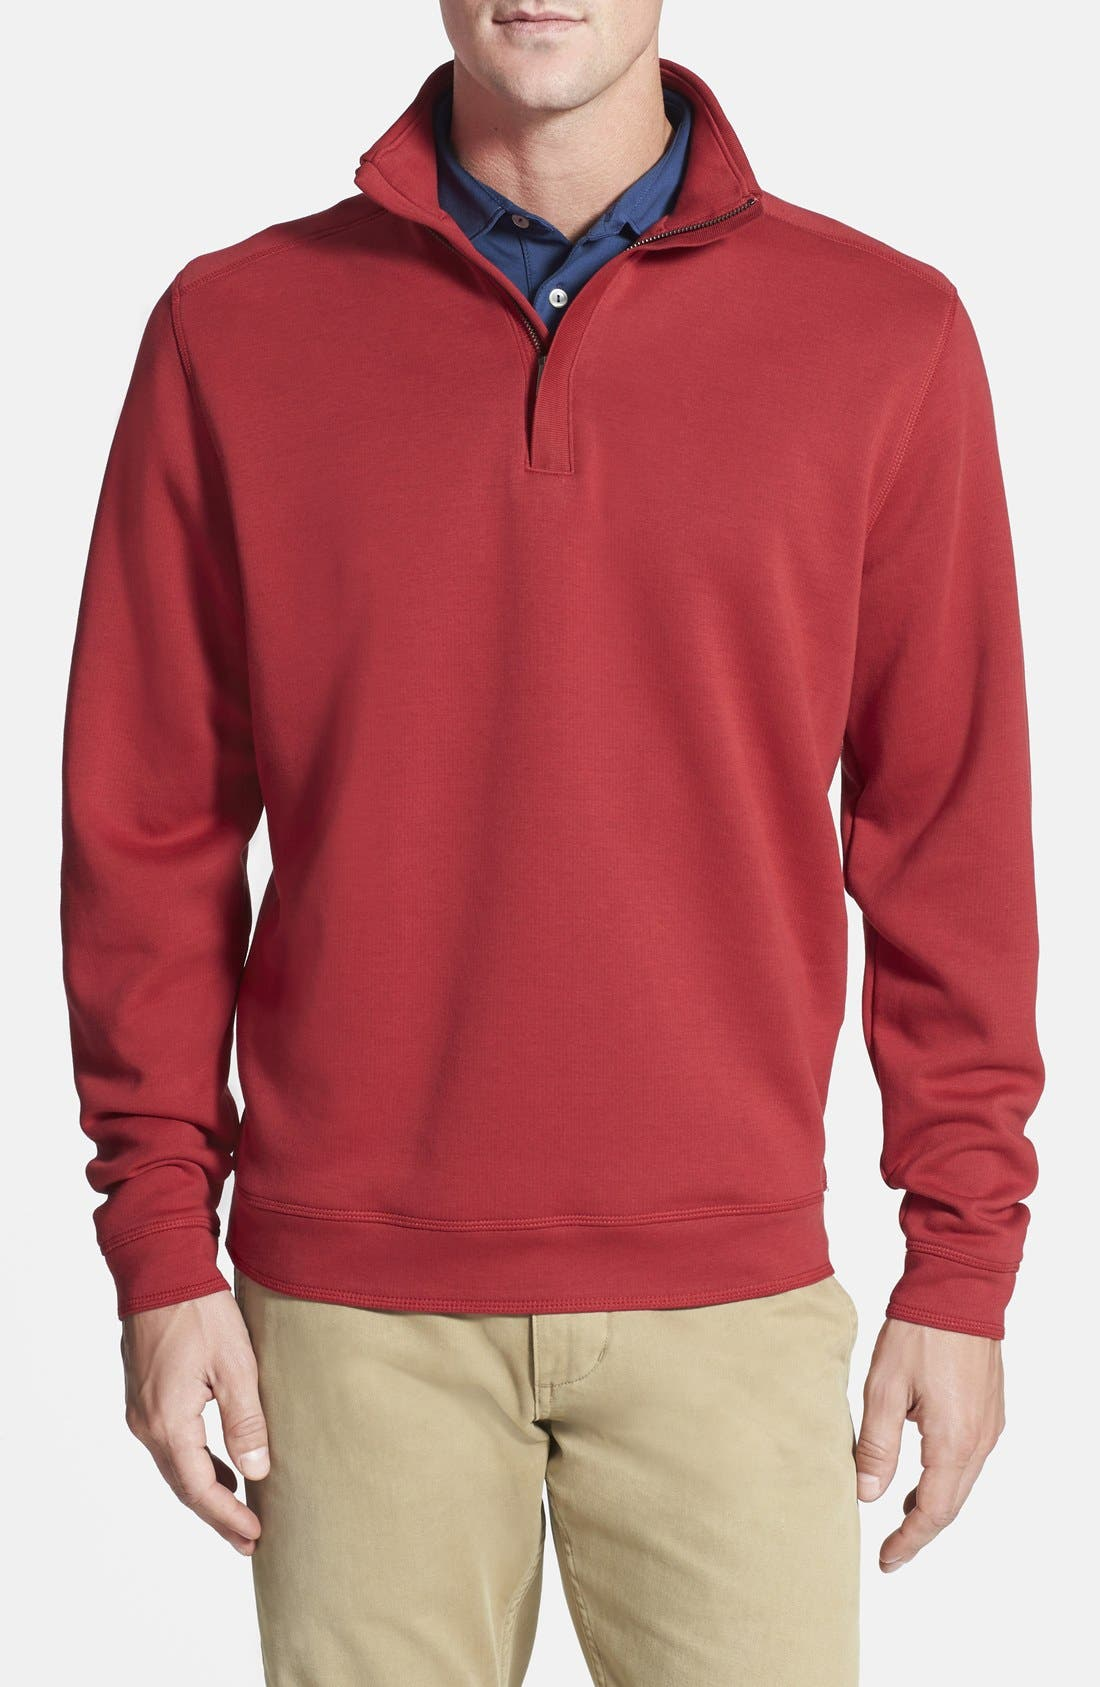 Cutter & Buck 'Decatur' Pima Cotton Pullover (Big & Tall)